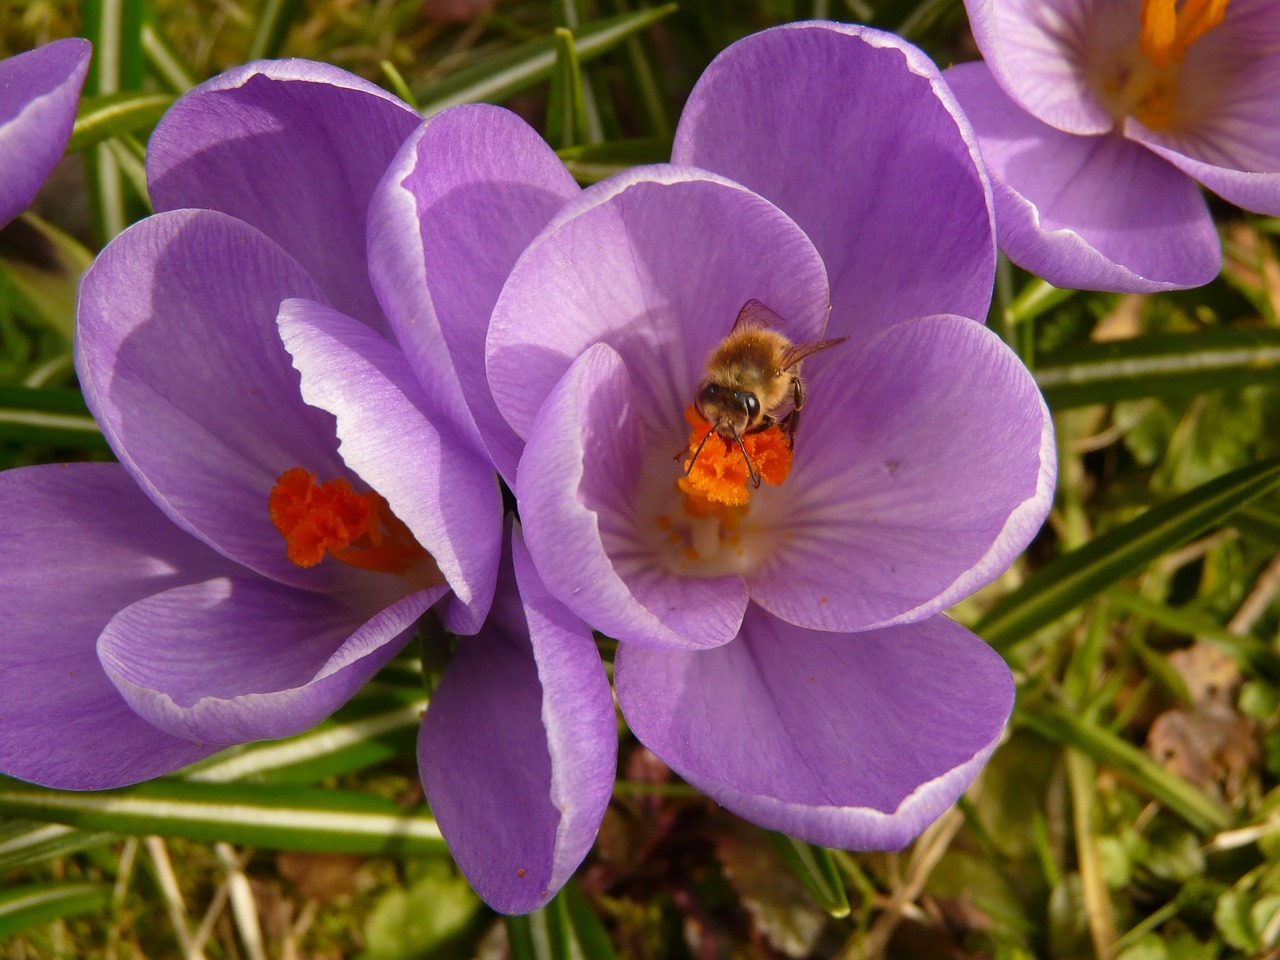 crocus Flower and a Bee.